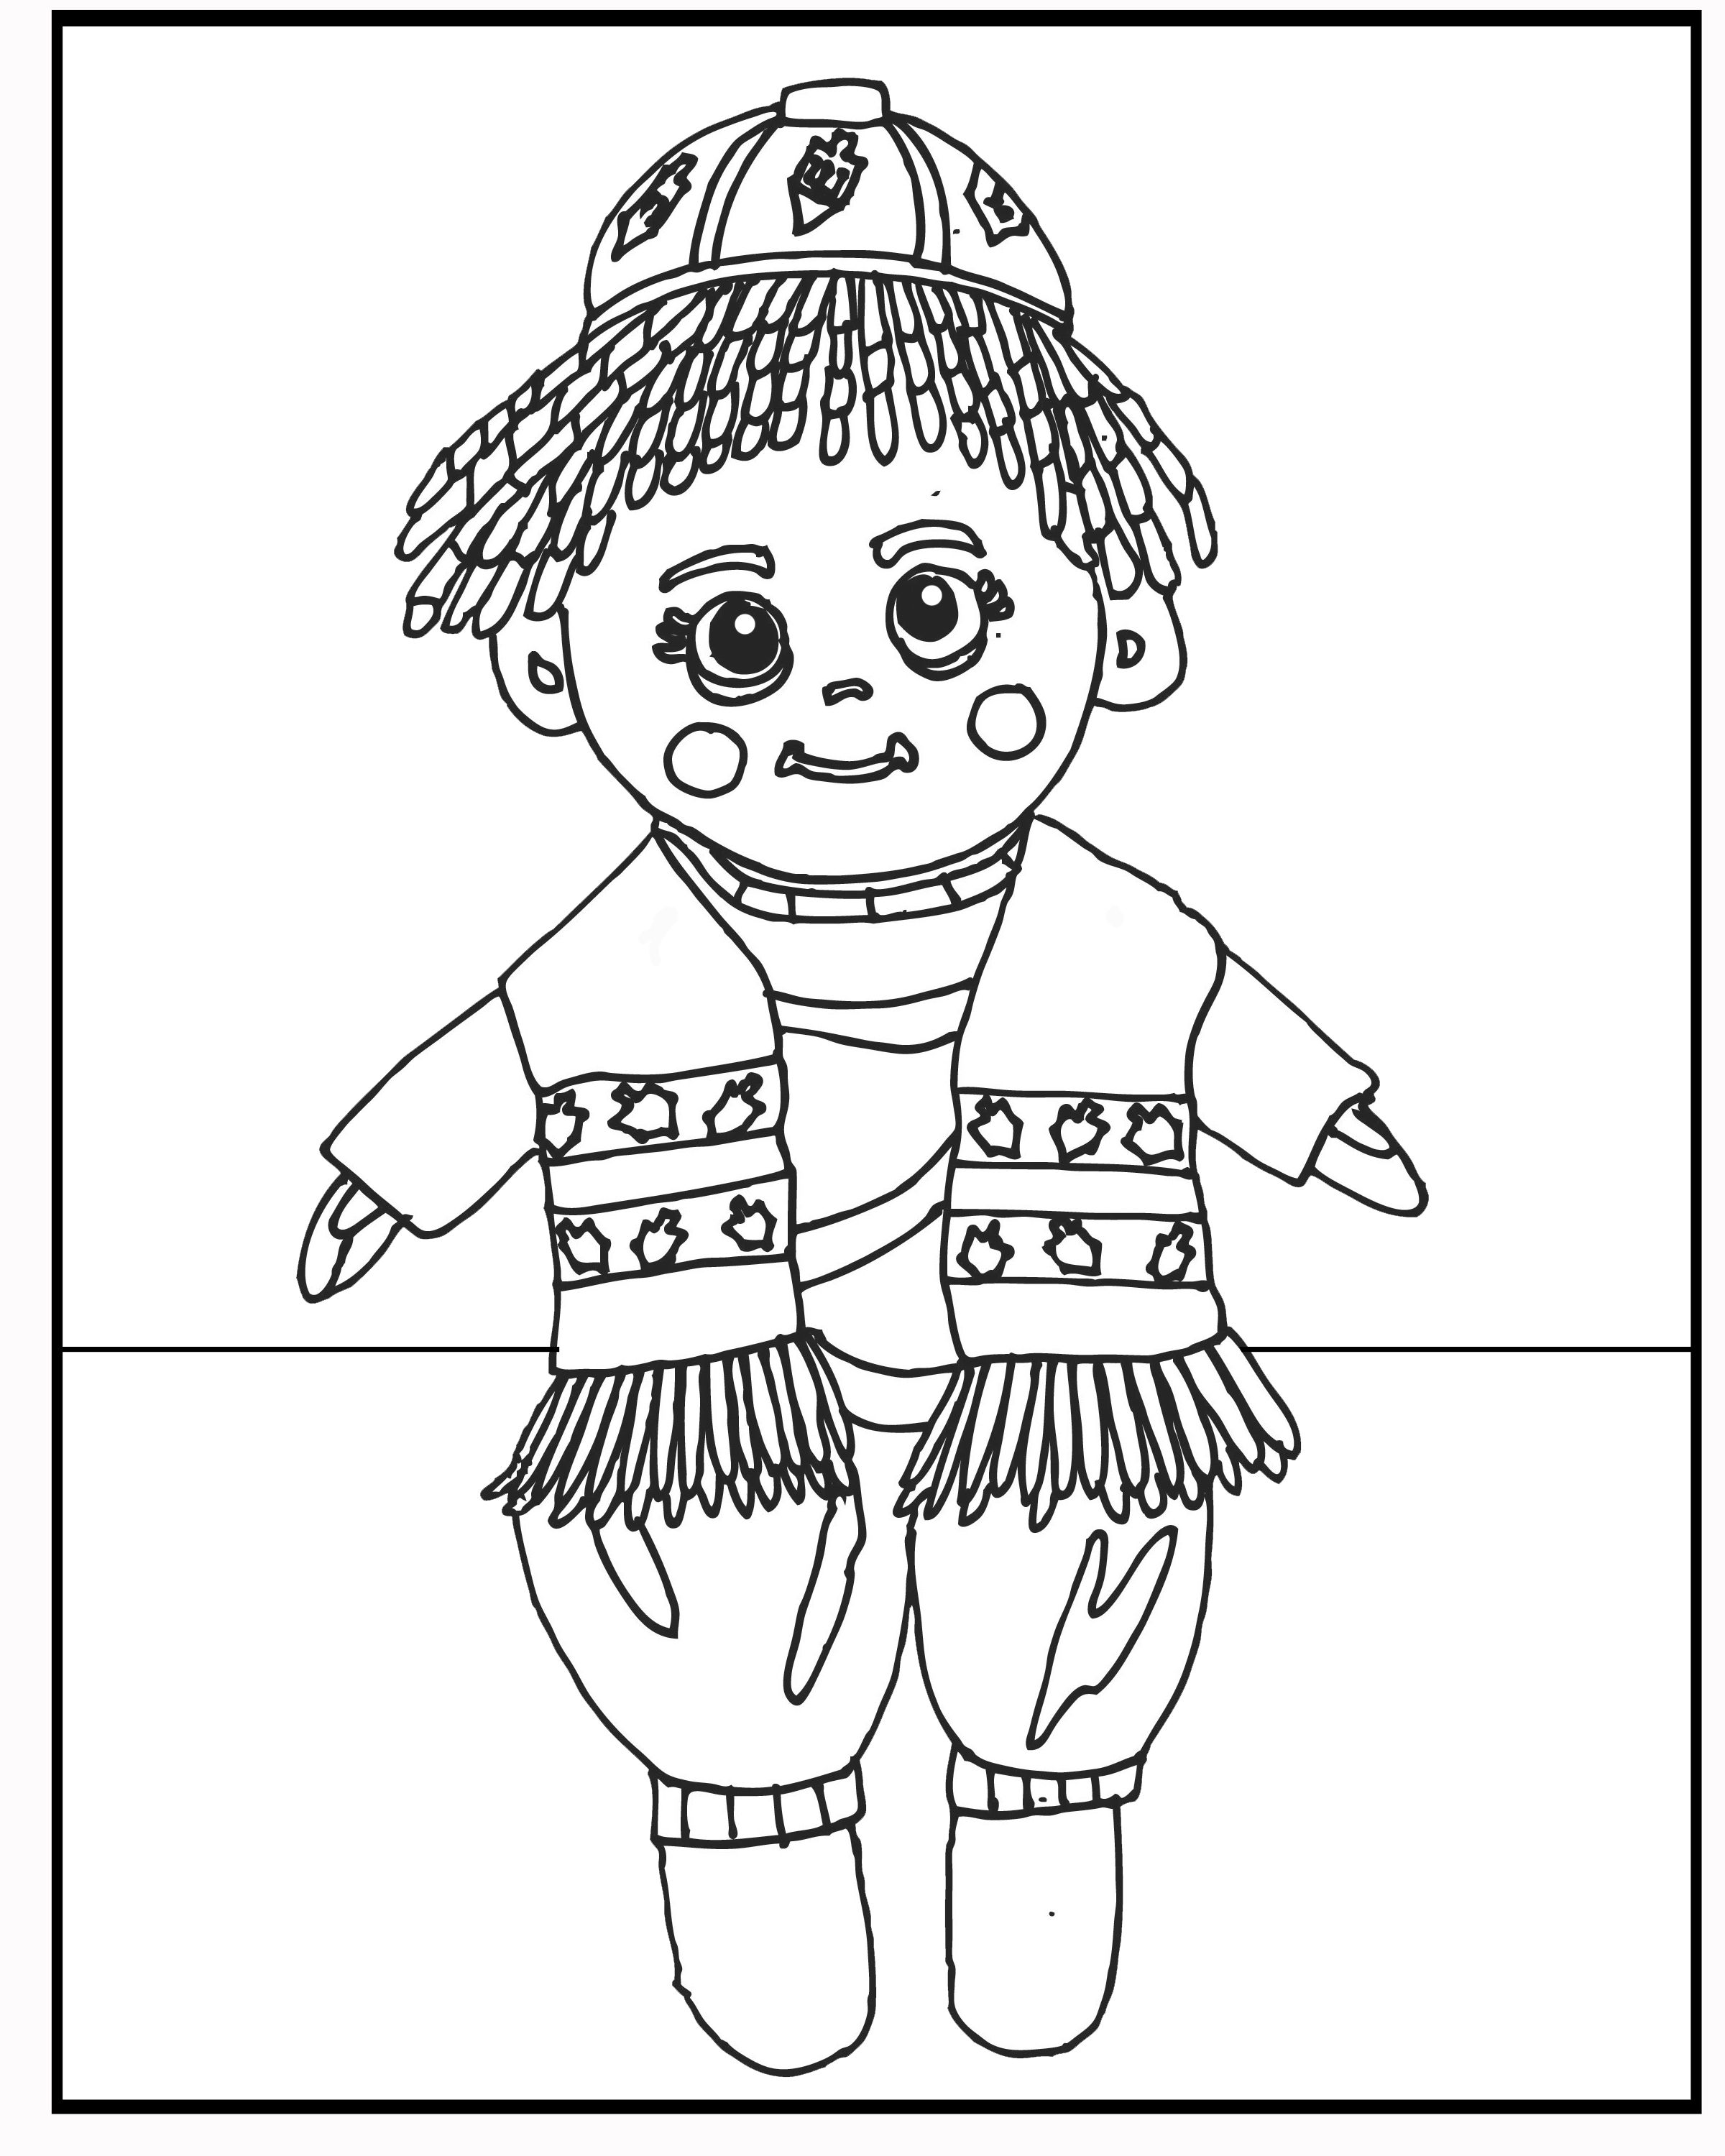 coloring sheet | Kippah Kantor- Jewish Elf on the Shelf | Pinterest